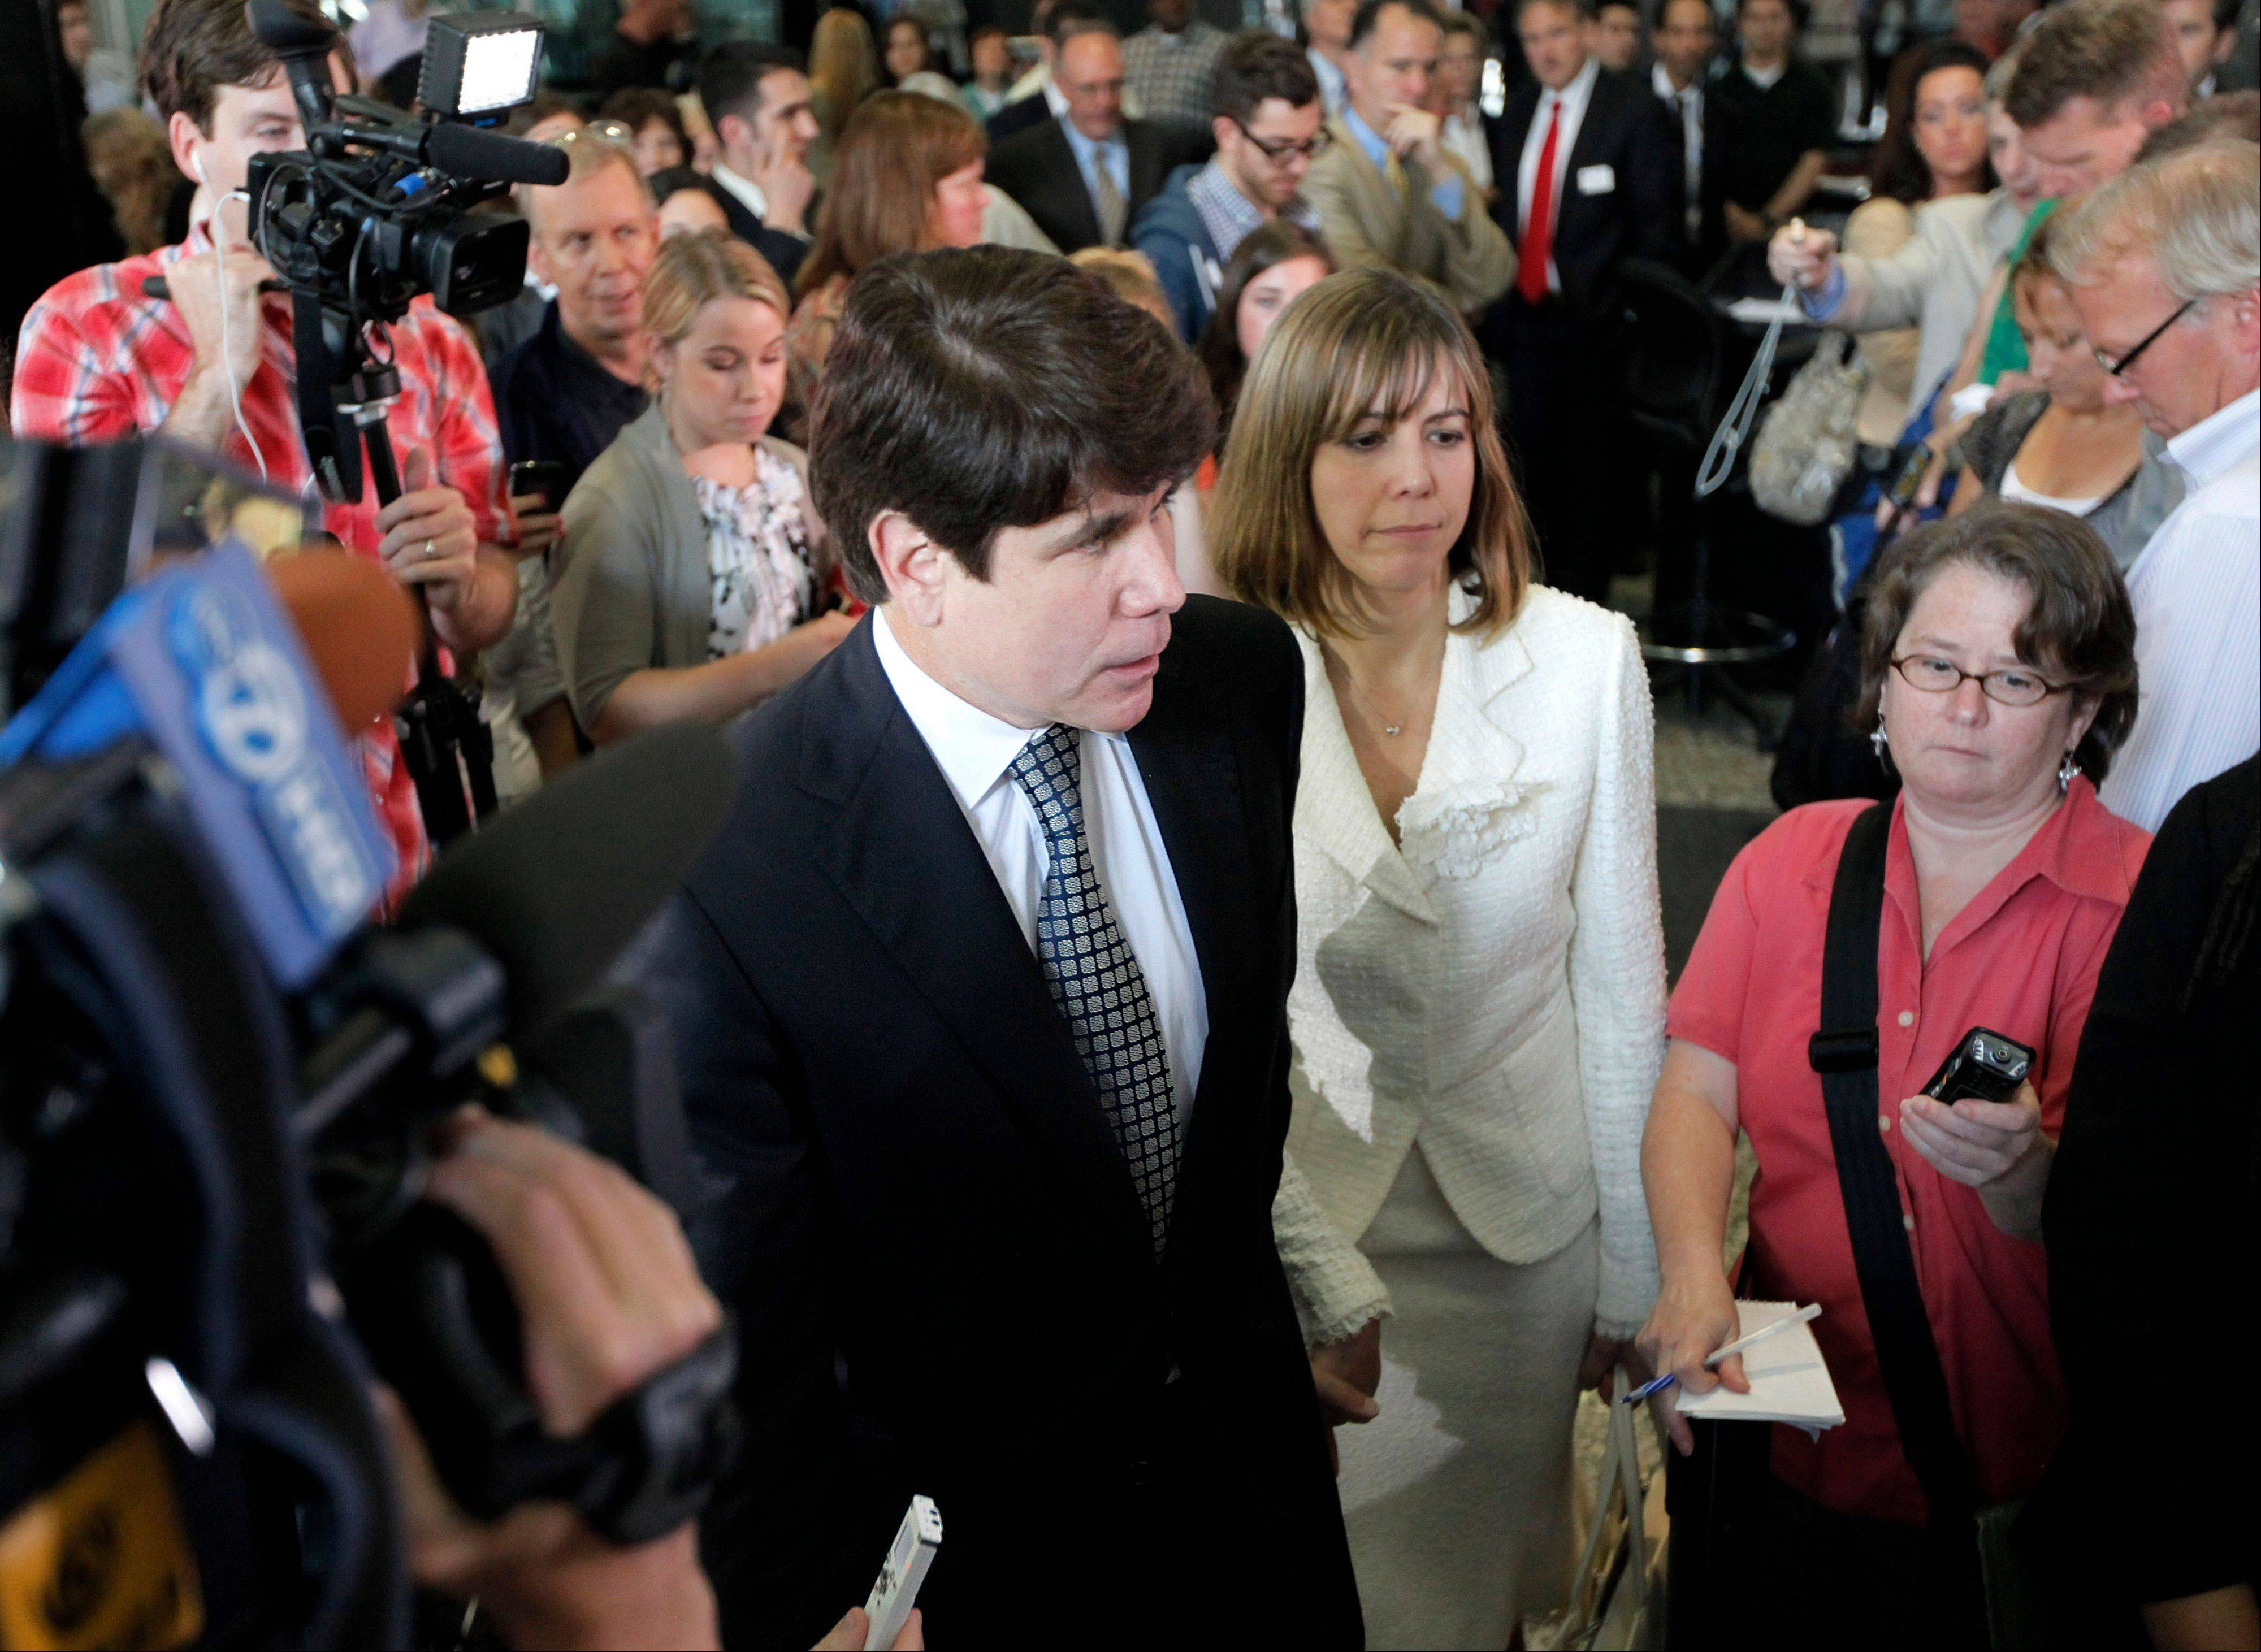 Images: The Blagojevich verdict